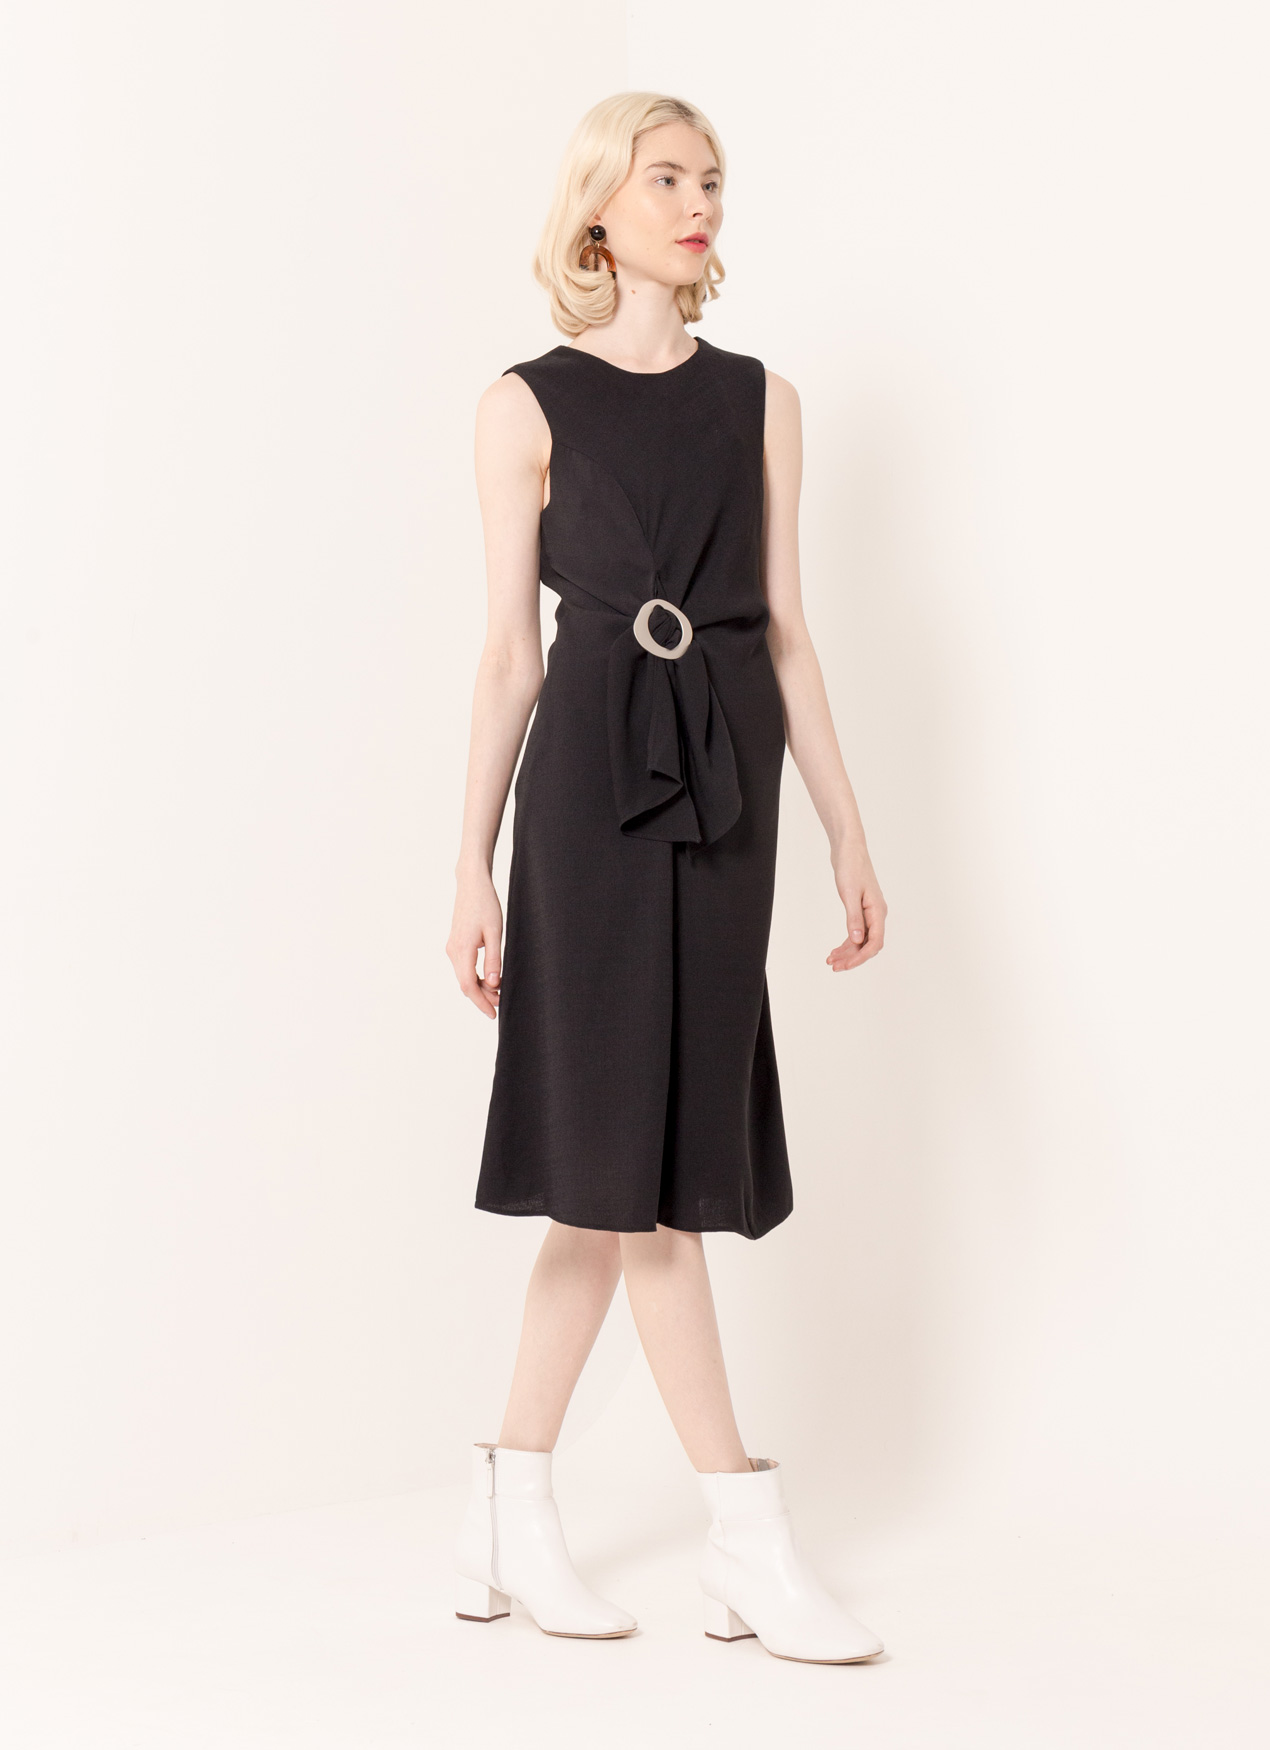 BOWN Margaery Dress - Black